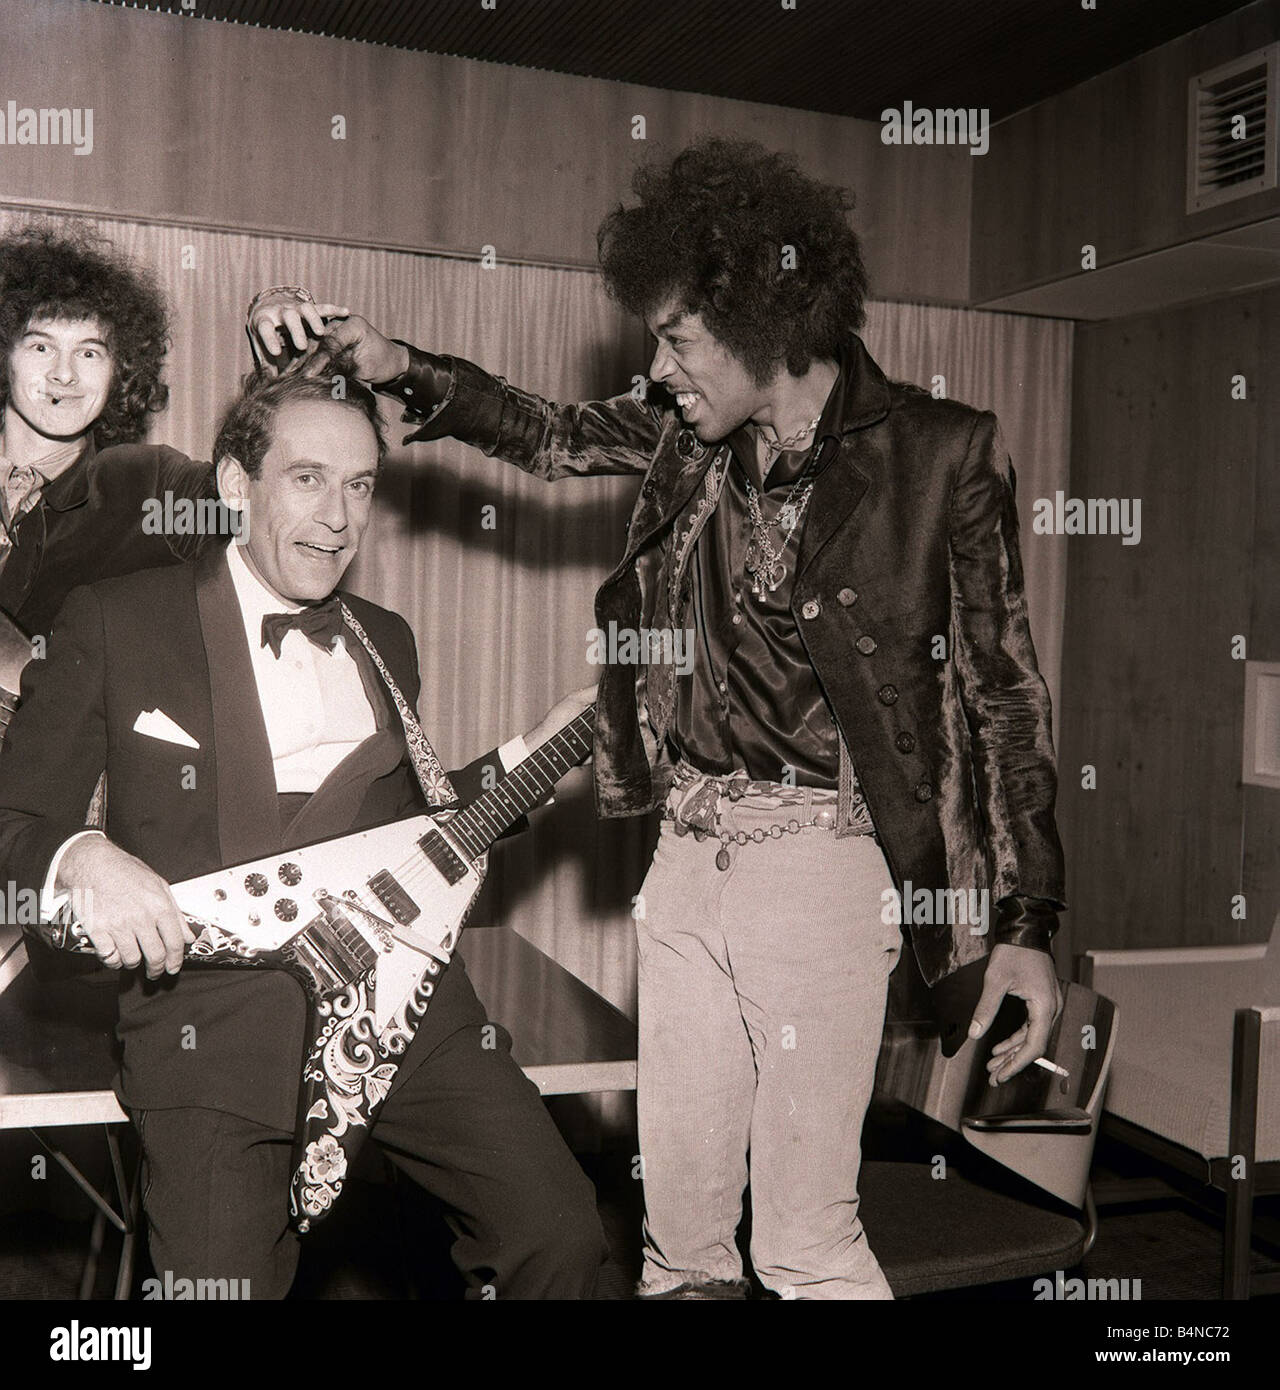 jeremy thorpe with jimi hendrix after concert by the jimi